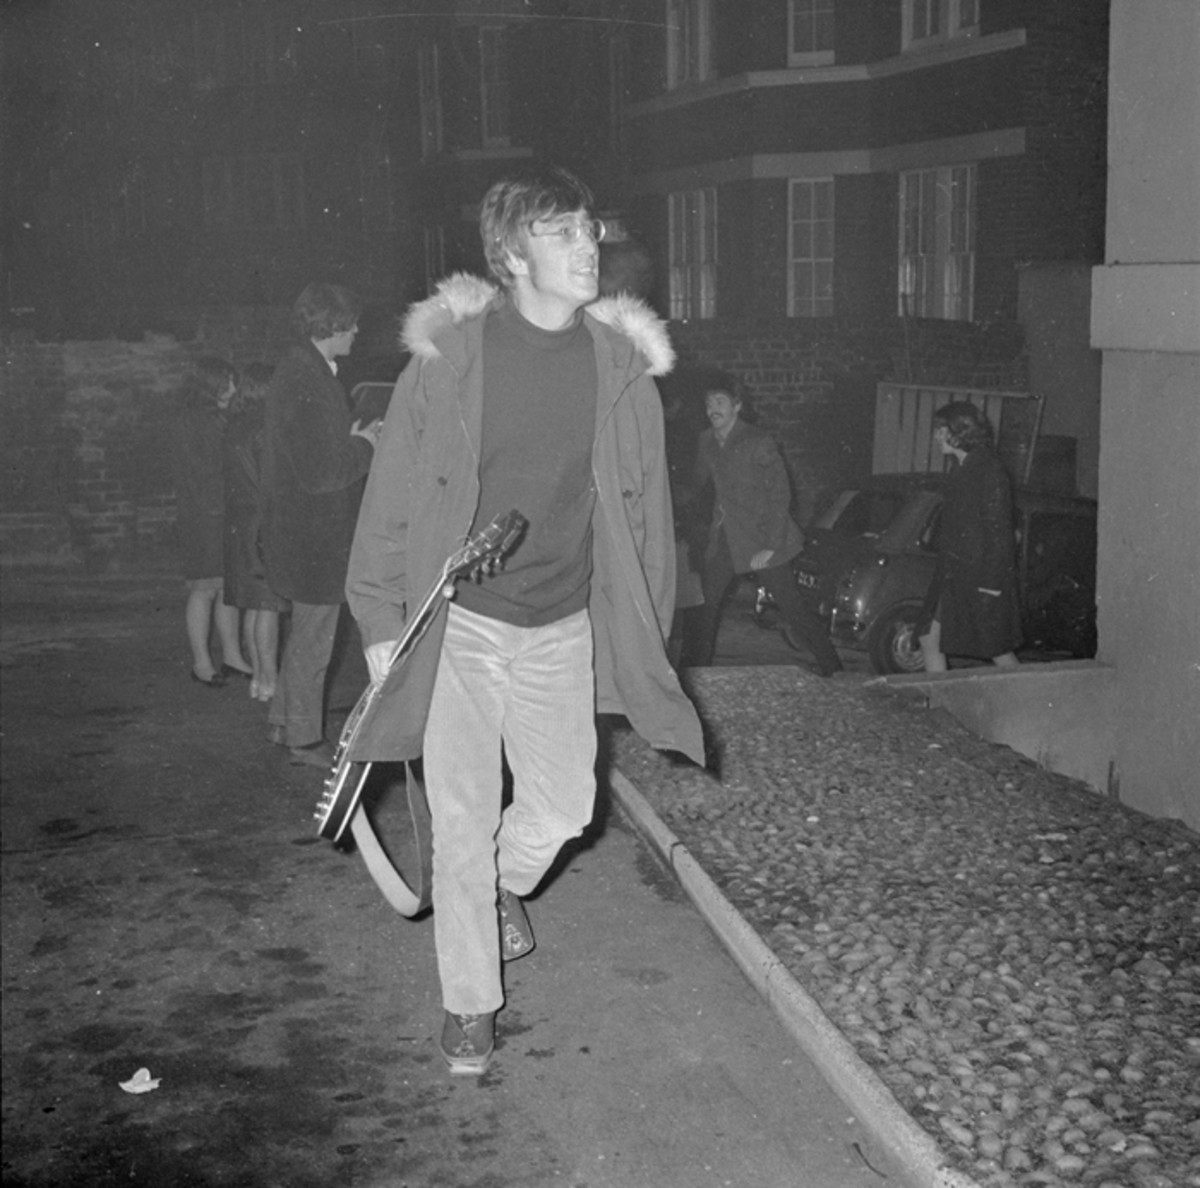 John Lennon arrives at the EMI studios in Abbey Road, London in 1966. (Photo by Larry Ellis/Express/Getty Images)